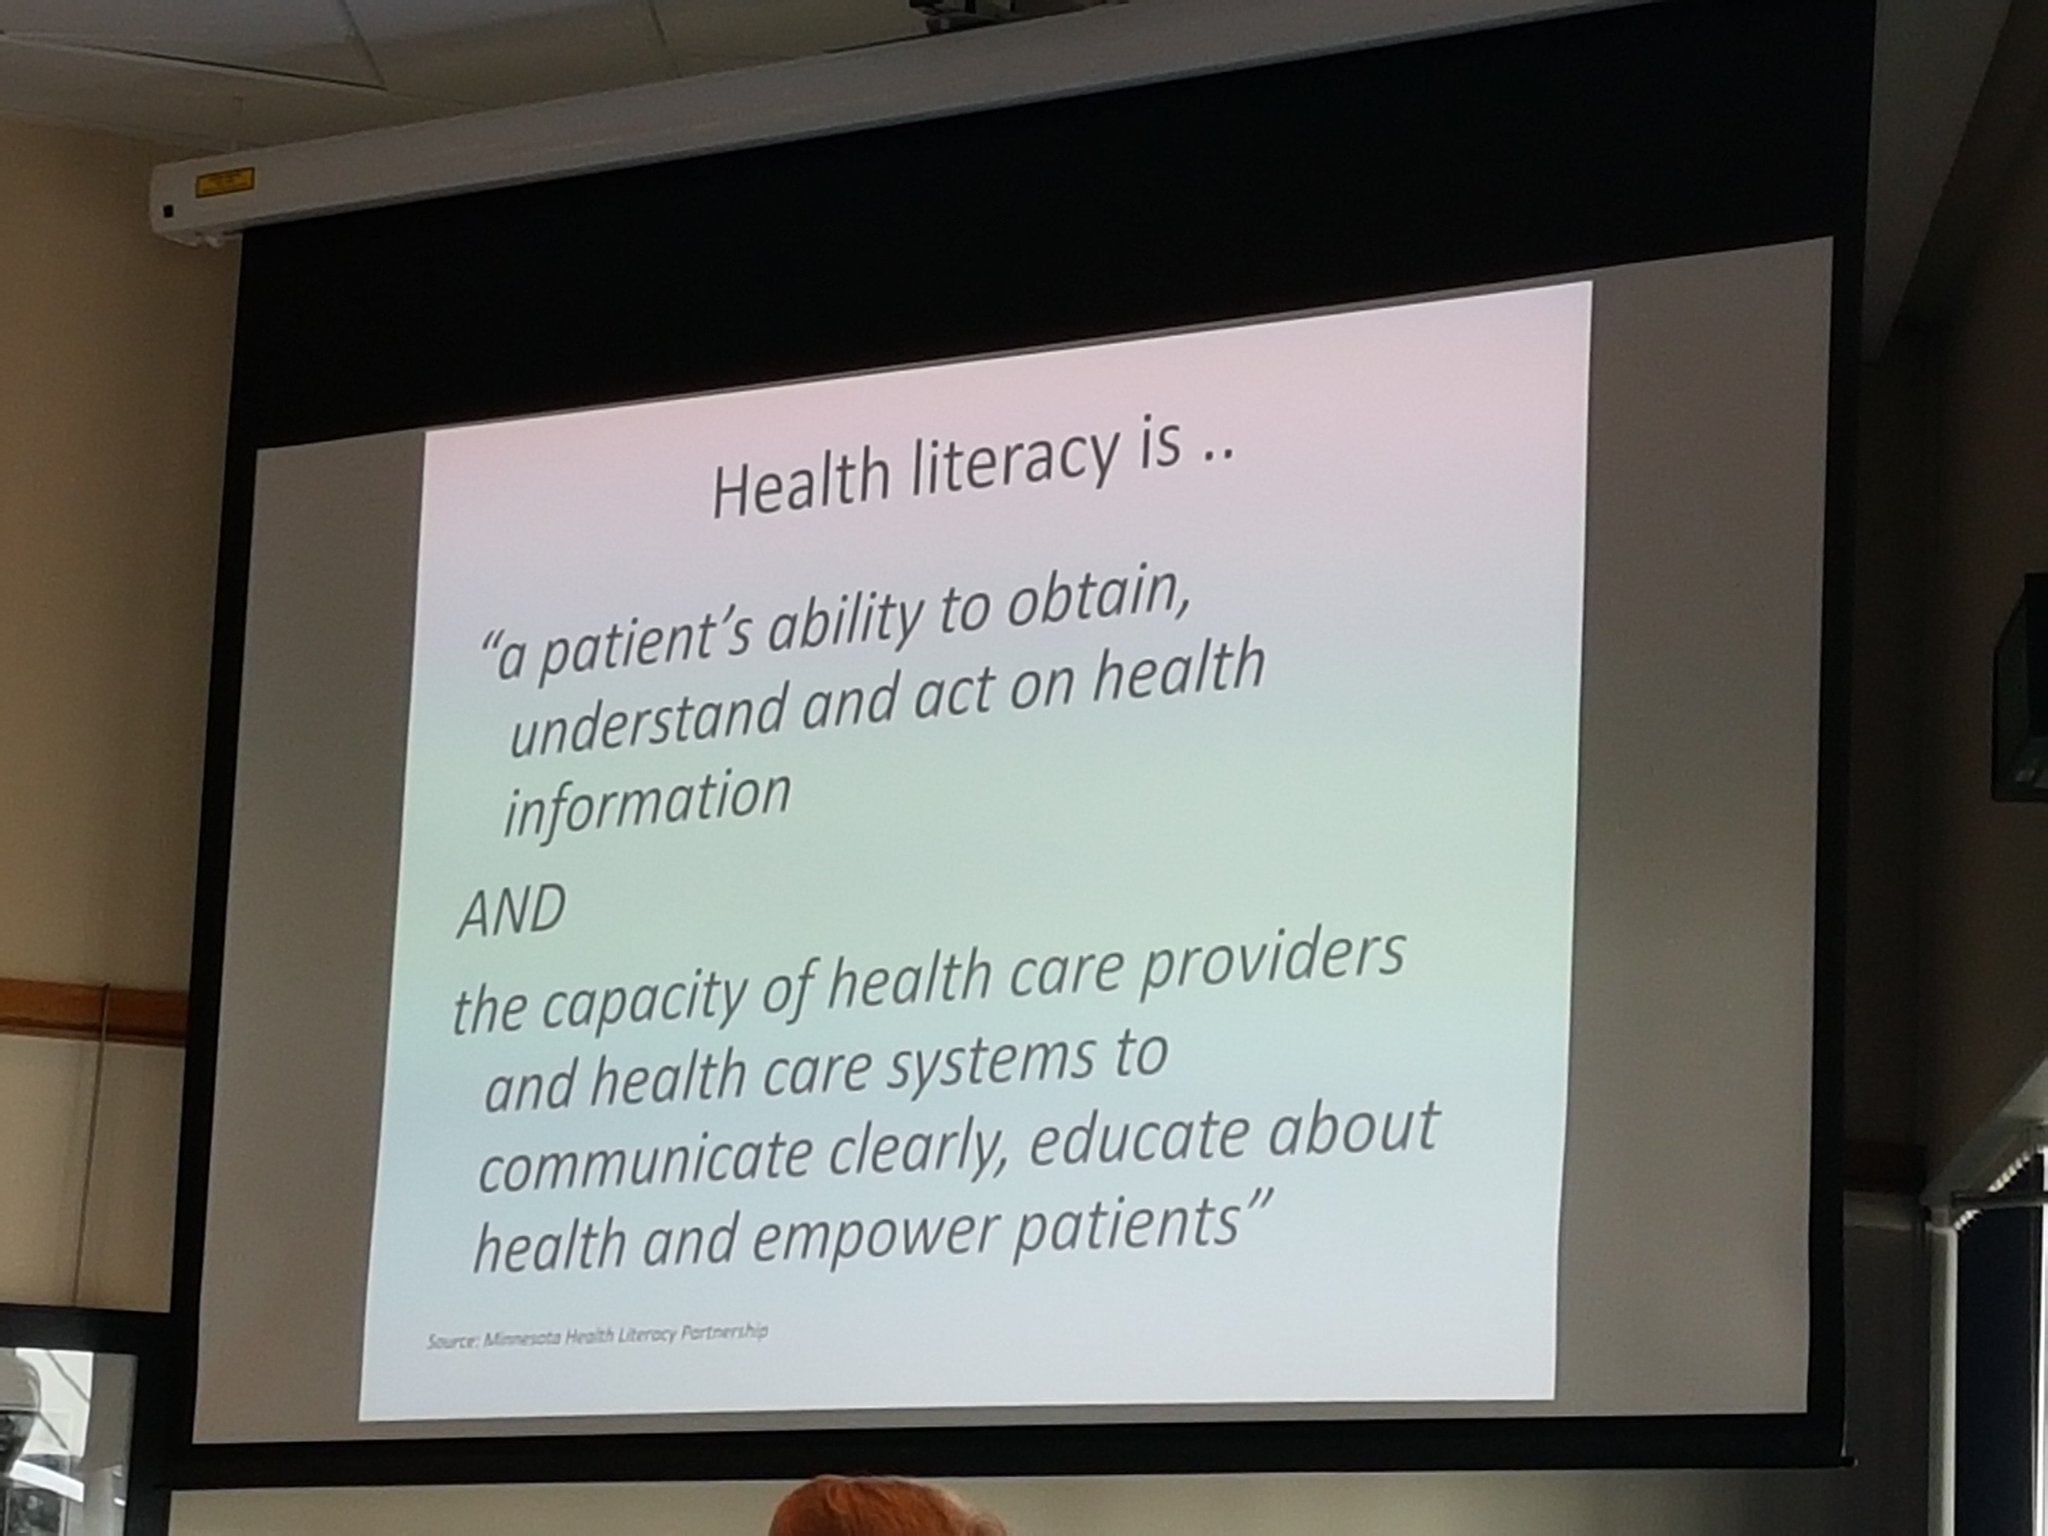 Valuable definition of the different aspects of health literacy #healthlitdiscovery https://t.co/I6hVdbGmye